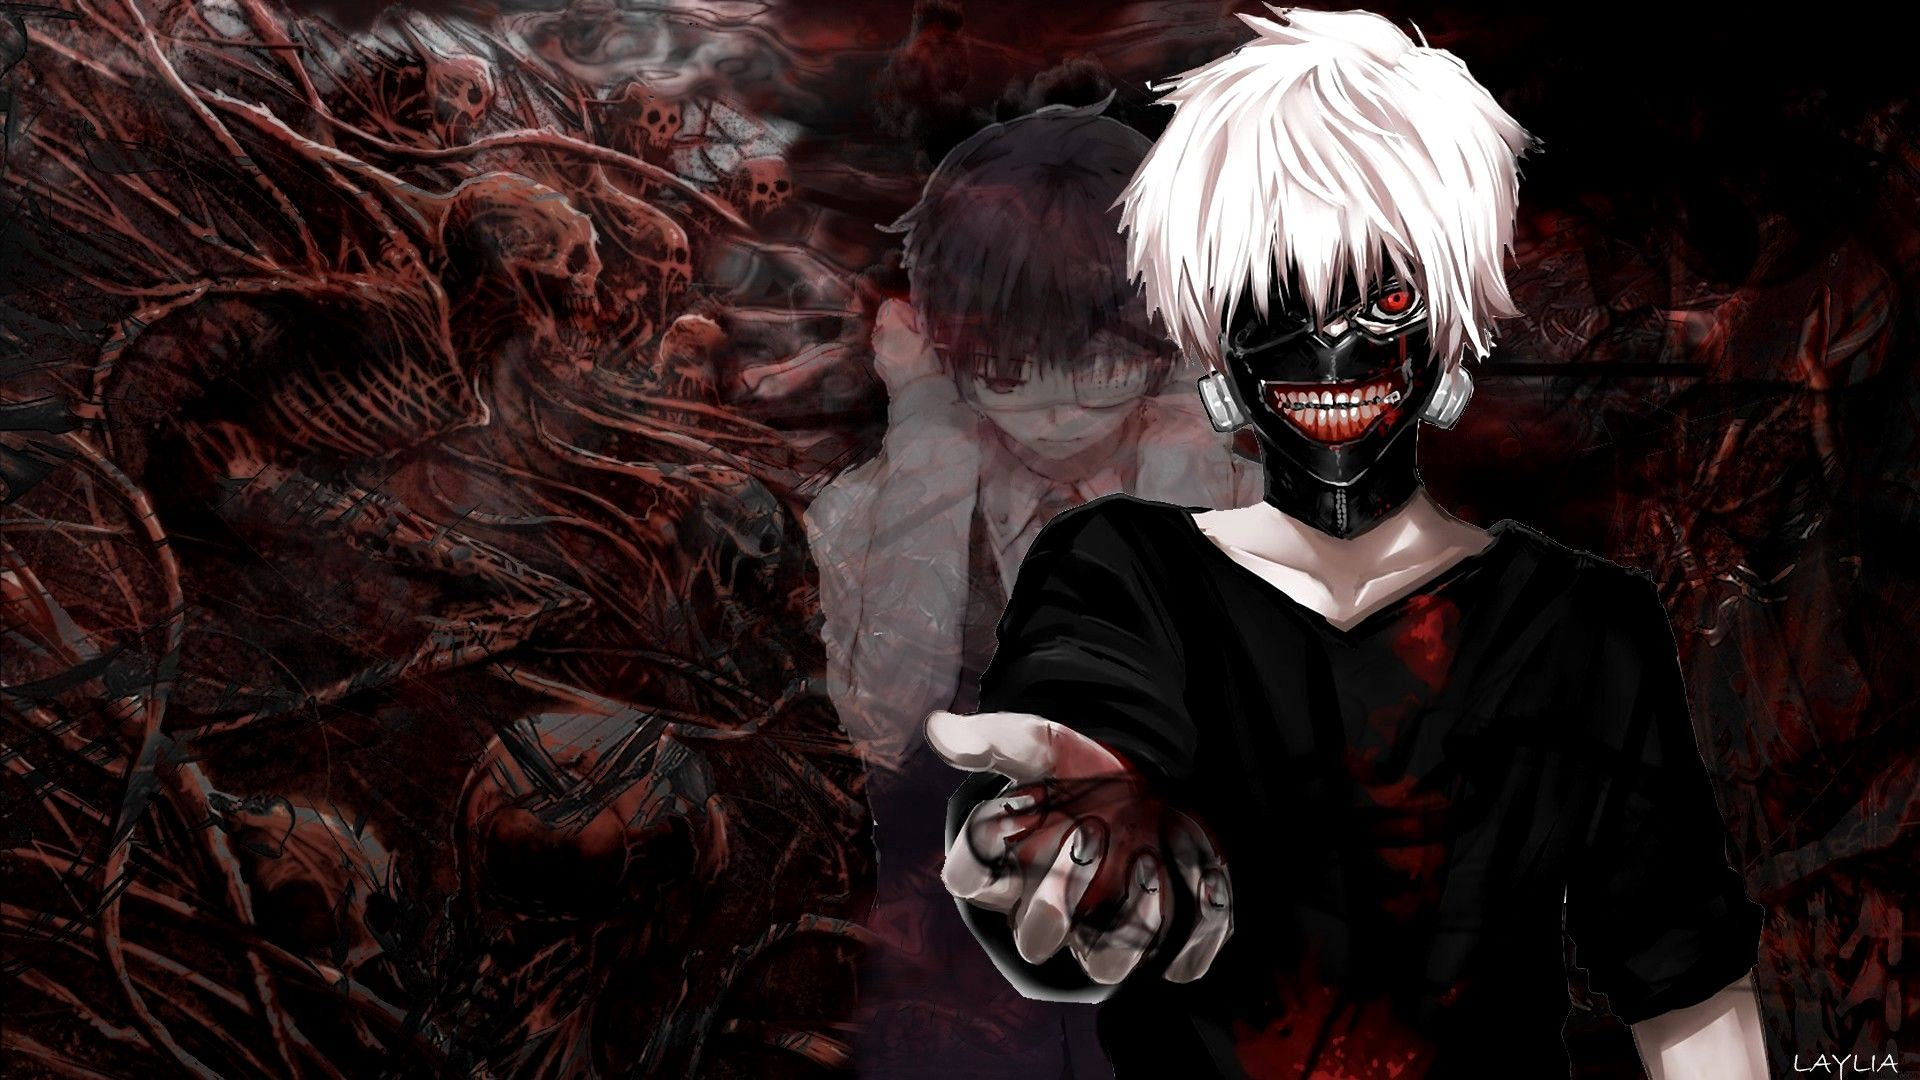 Tokyo Ghoul Wallpaper 4k Mobile Ideas 4k Trong 2020 Tokyo Ghoul